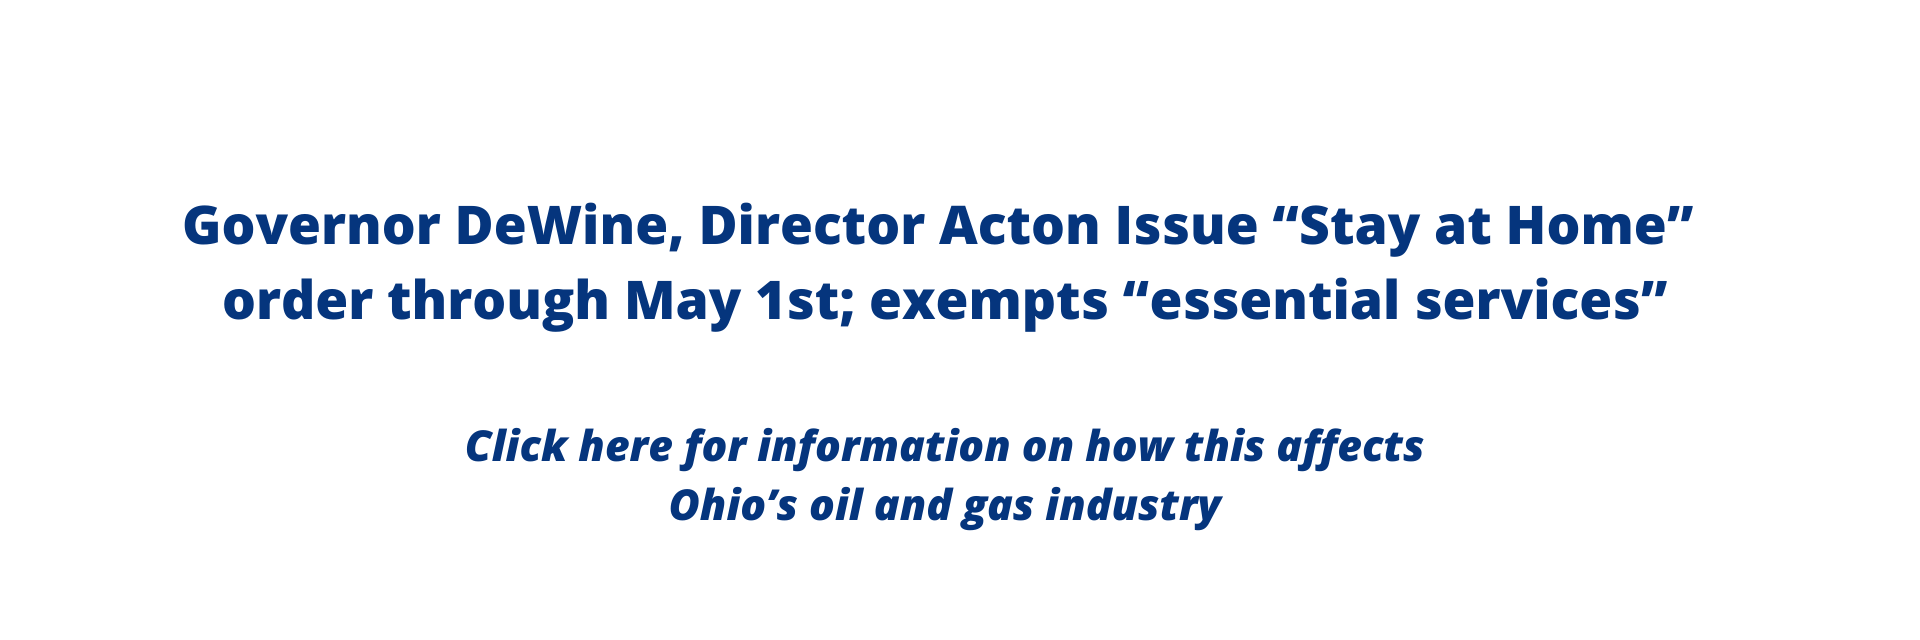 COVID-19 and what how it affects Ohio's Oil and Gas Industry